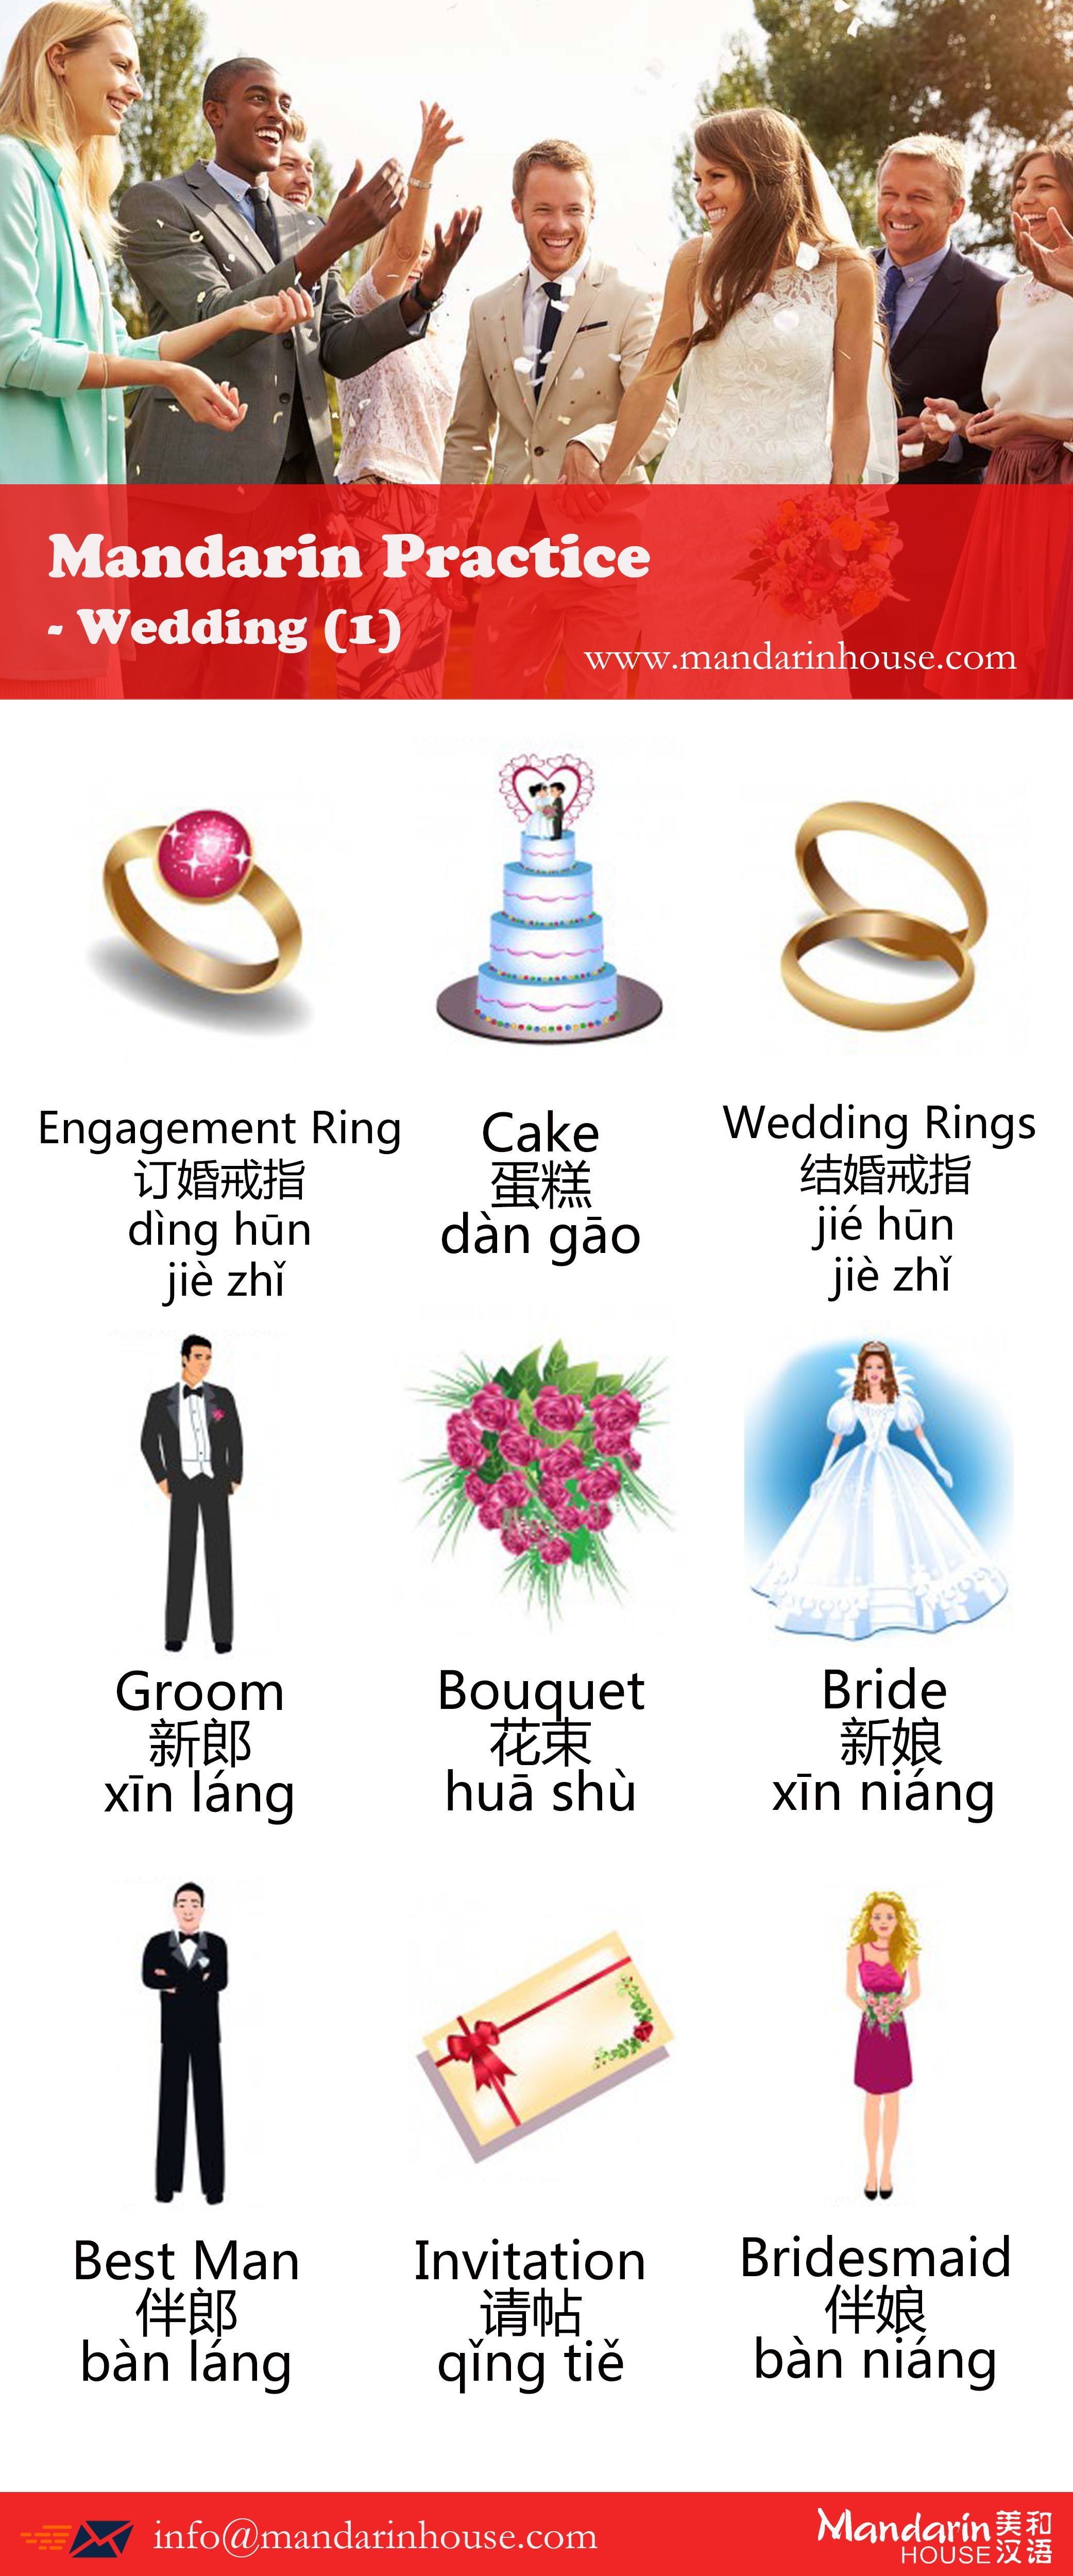 Wedding vocabularies in chineser more info please contact wedding vocabularies in chineser more info please contactsophiazhangmandarinhouse buycottarizona Image collections